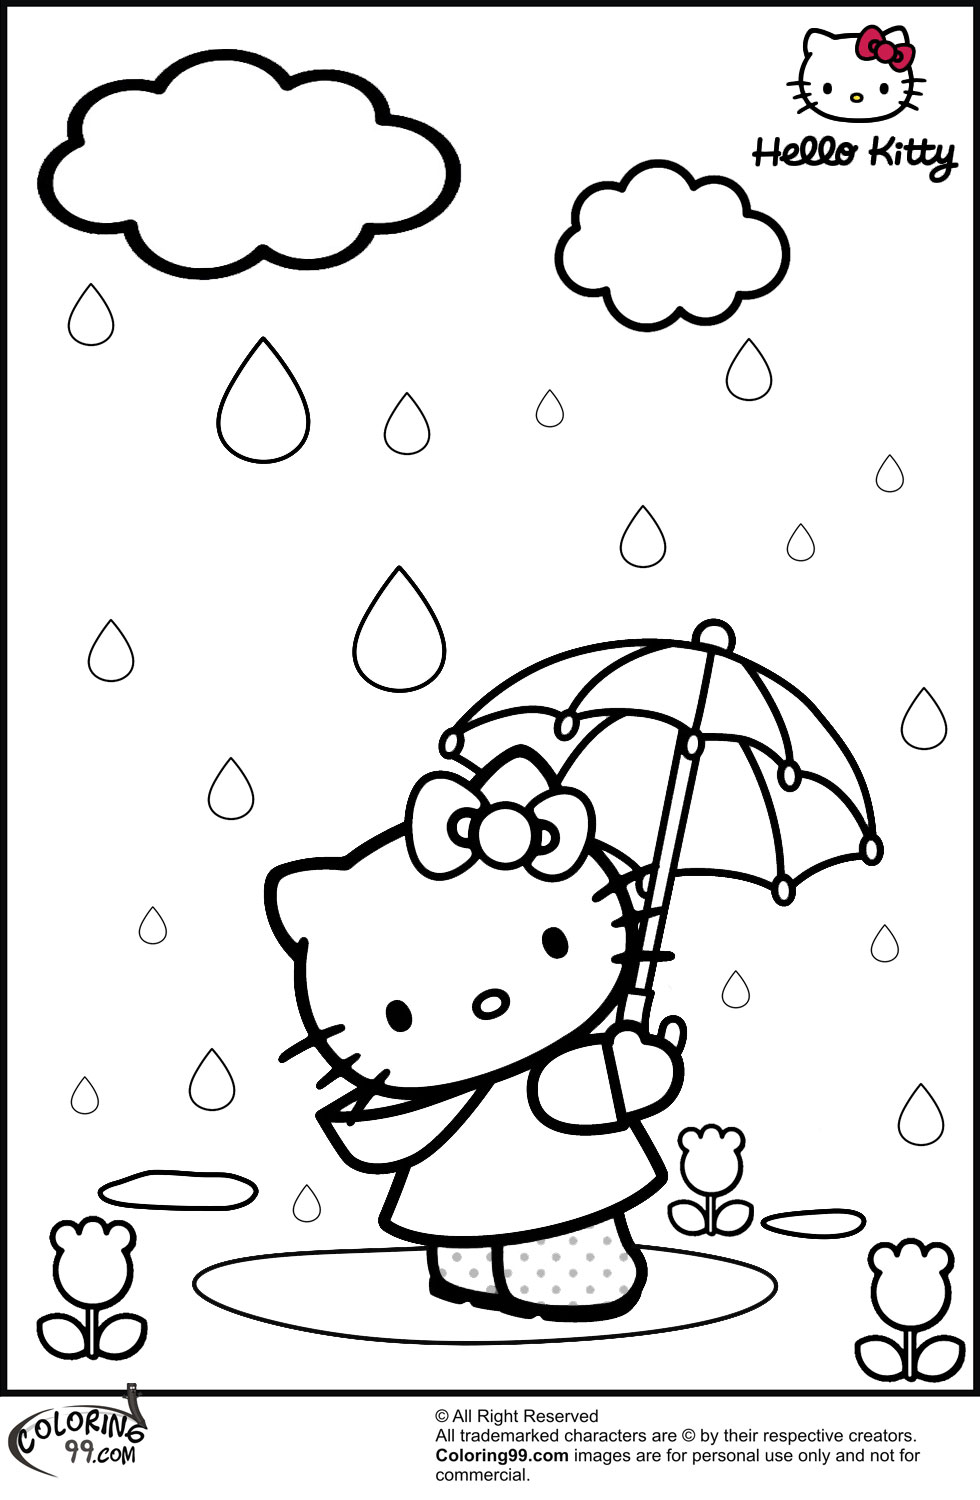 hello kitty color page hello kitty with heart balloons coloring pagepng 1300 kitty page hello color